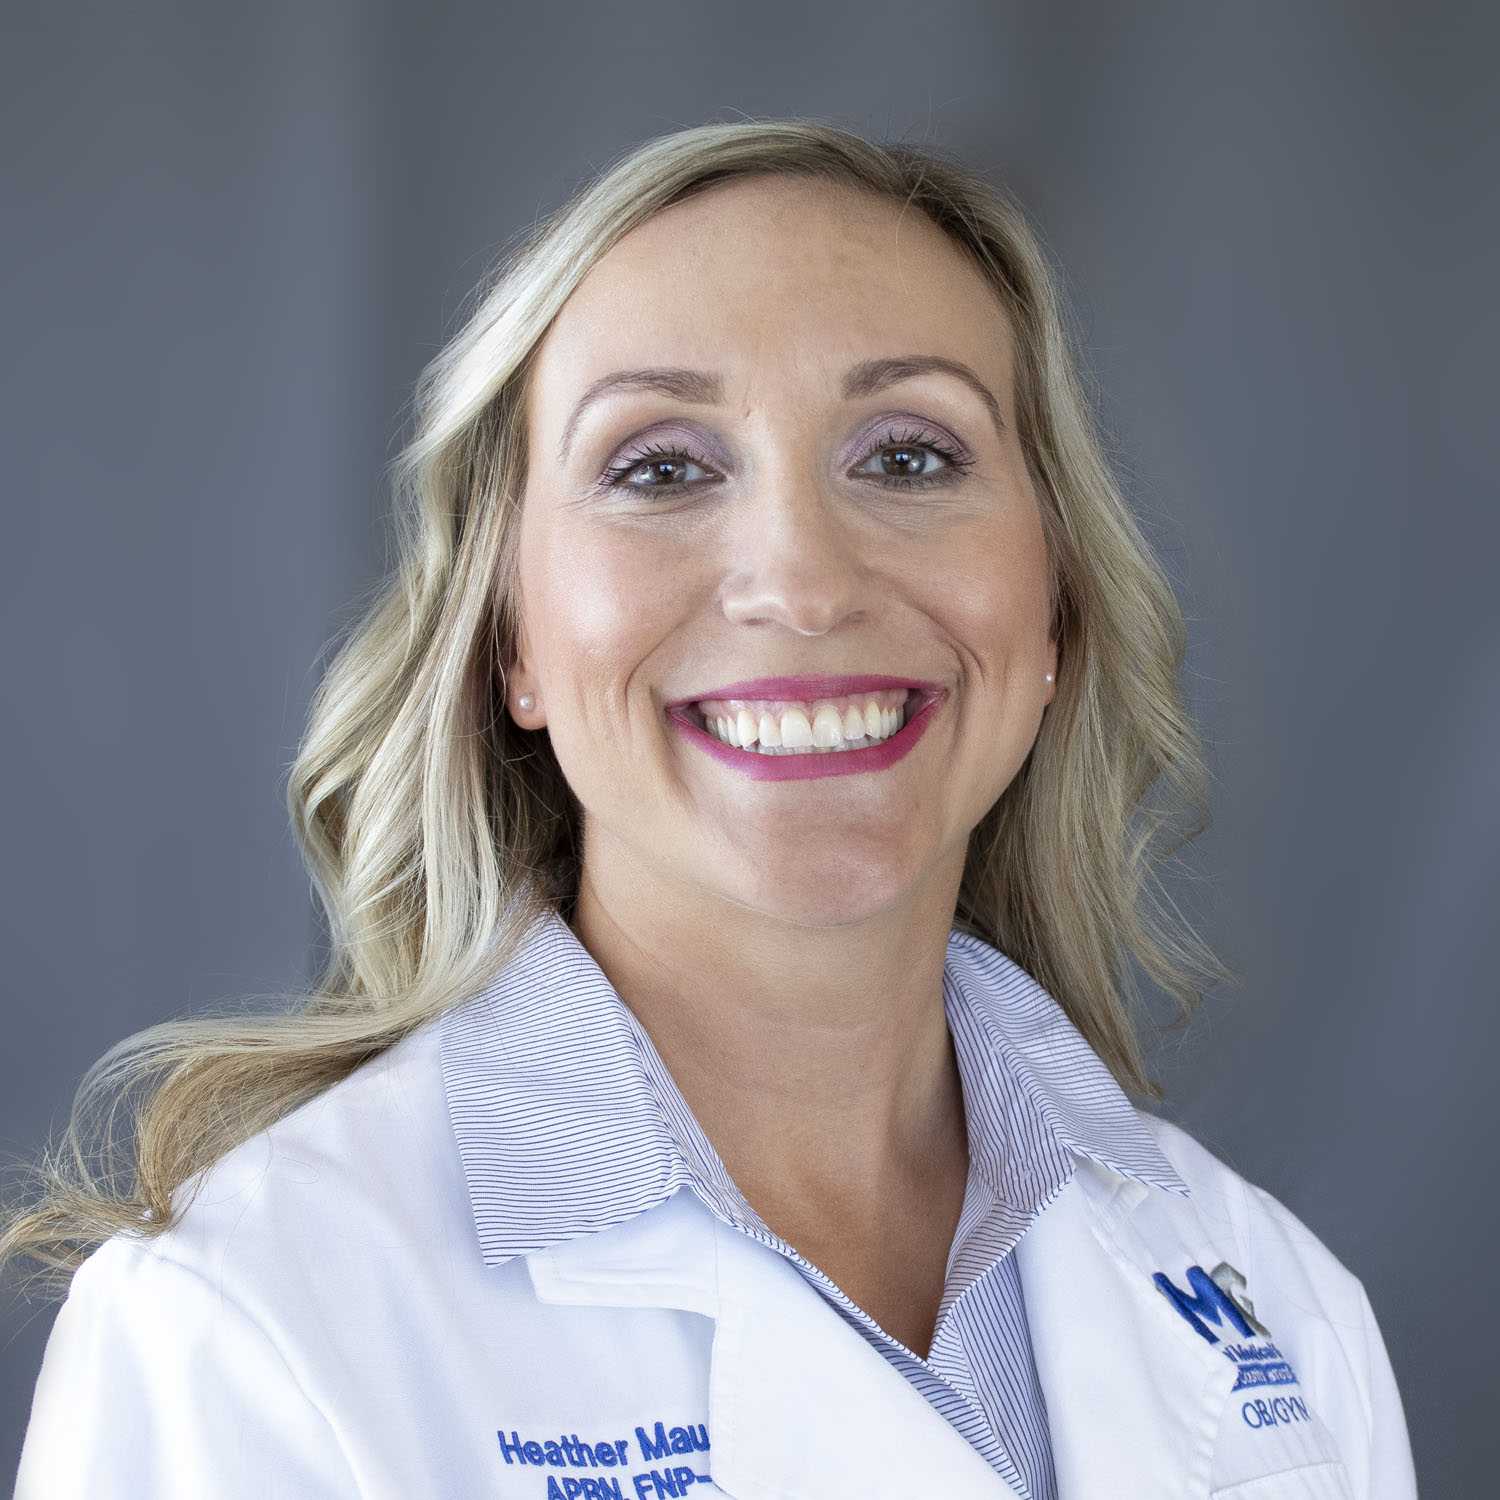 Heather Maurer OB-GYN